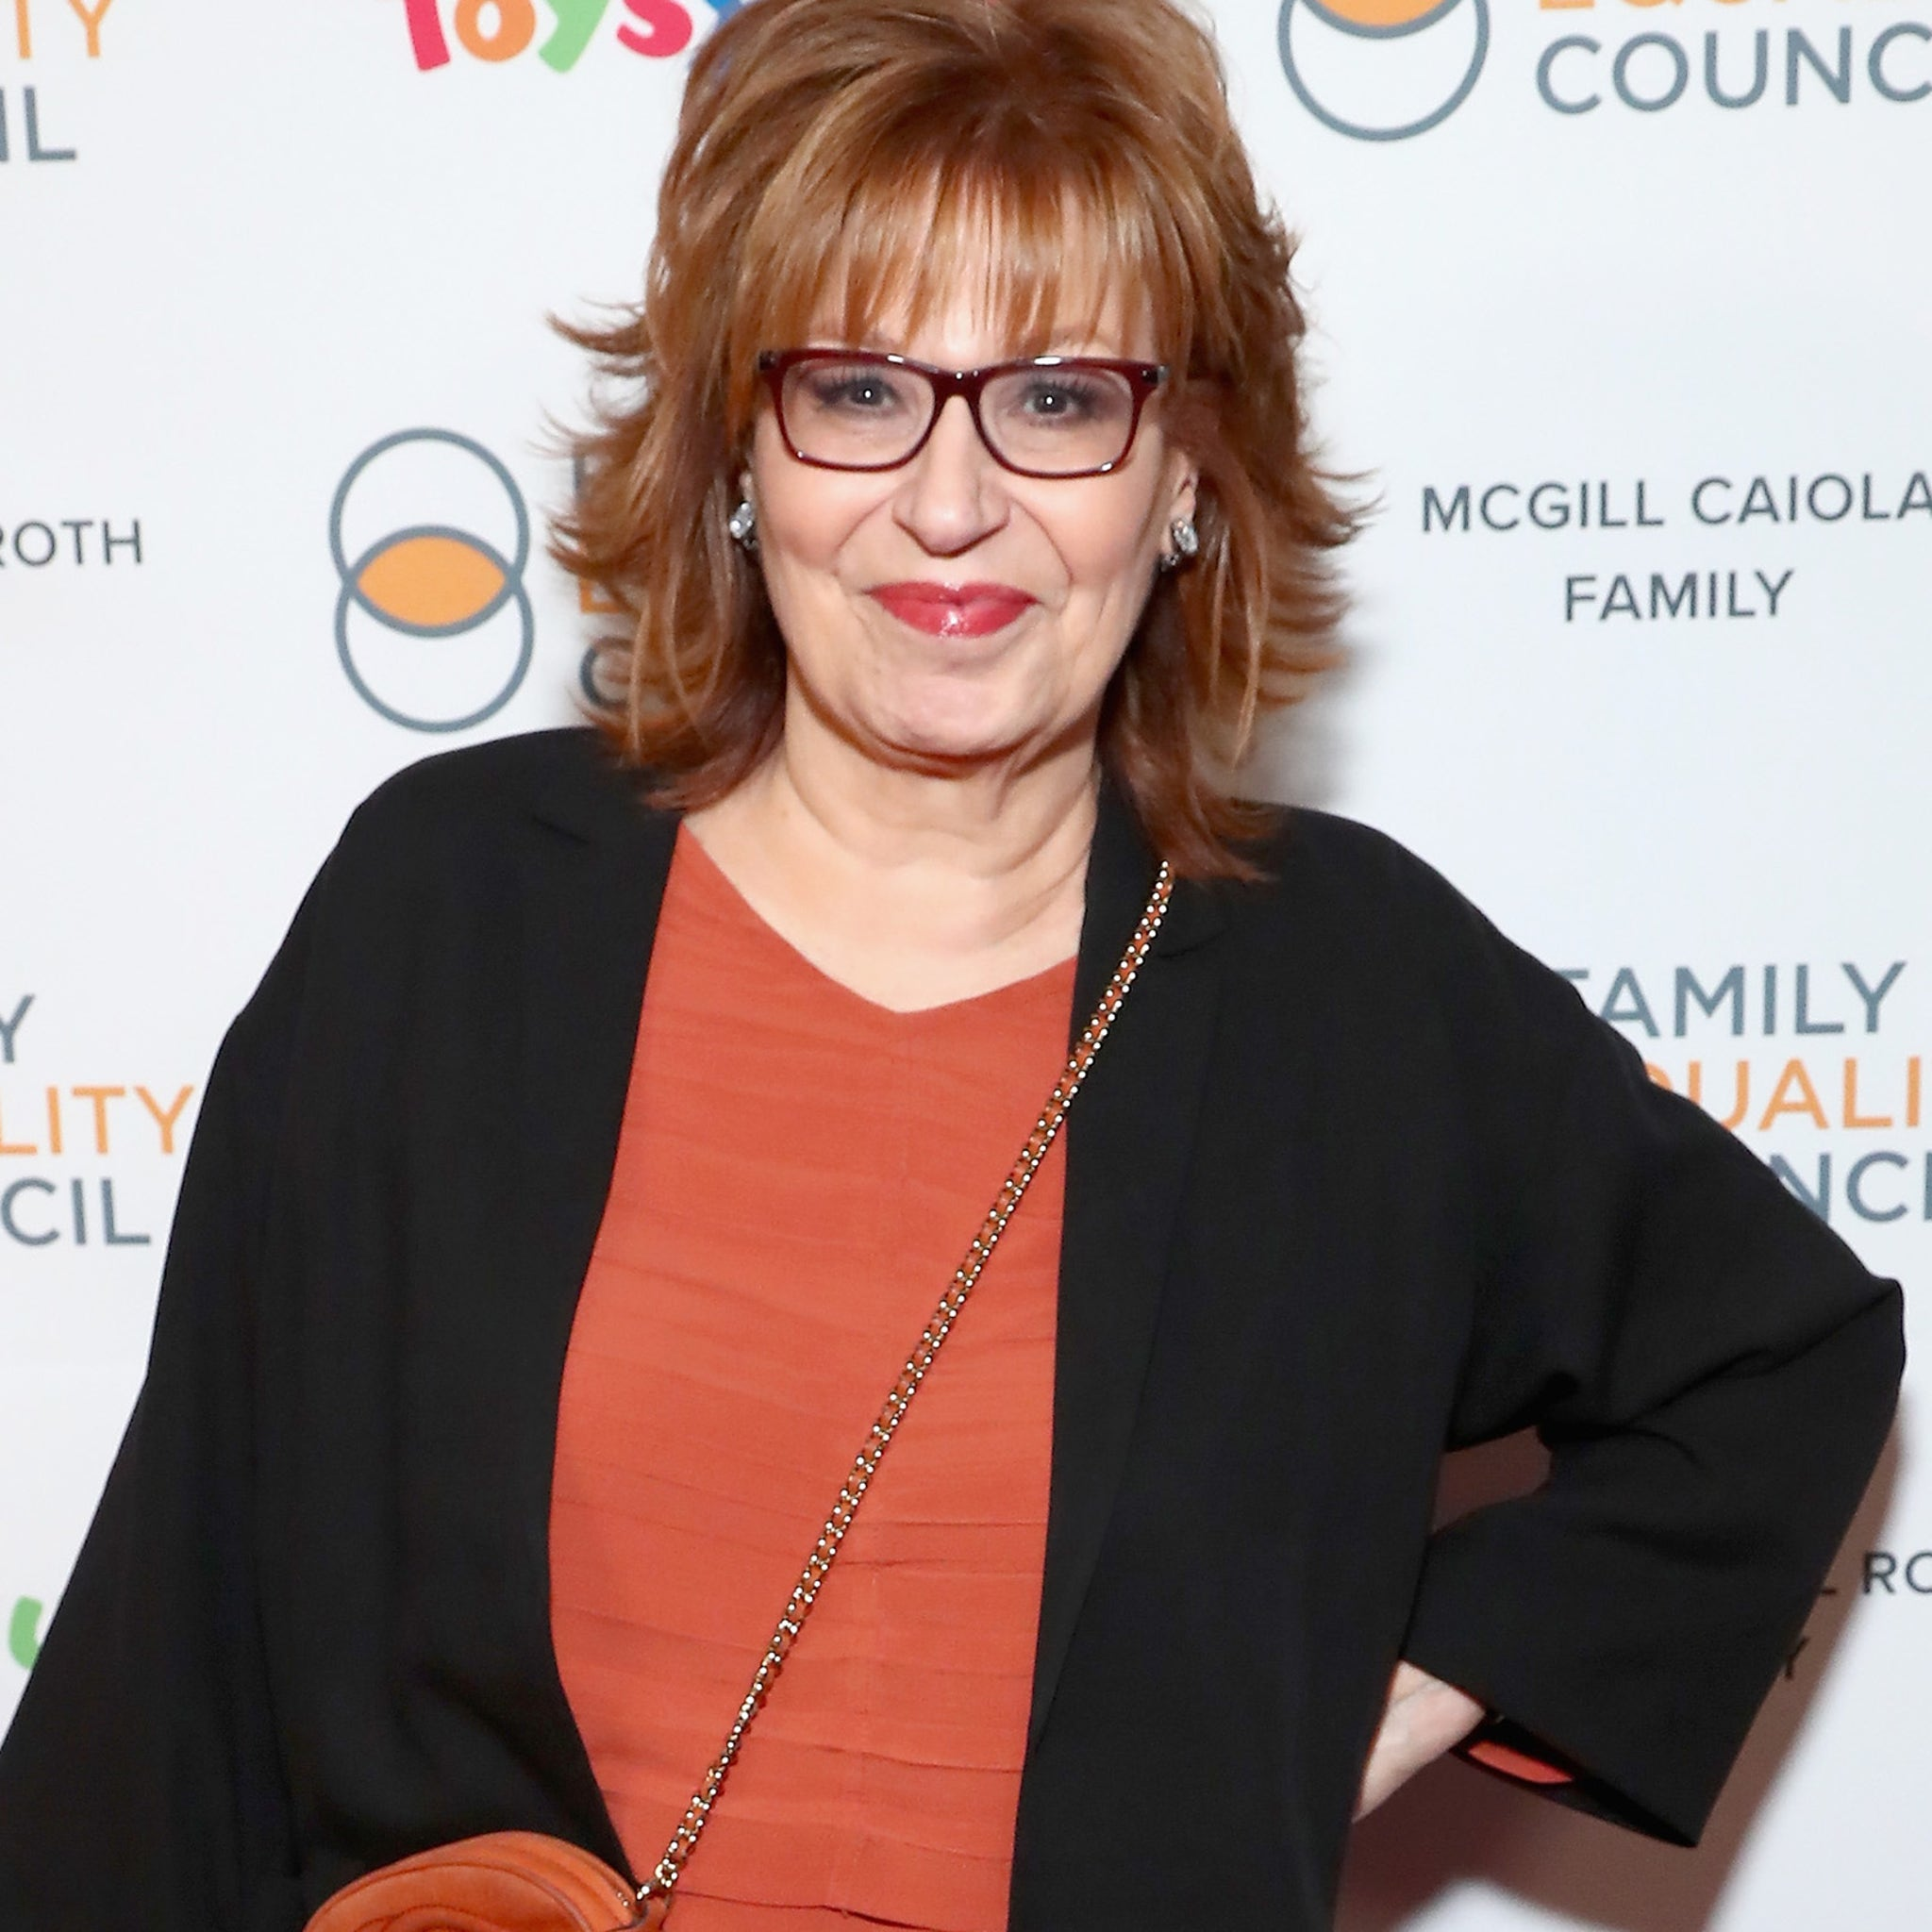 Joy Behar Taking Leave of Absence from The View Over Coronavirus